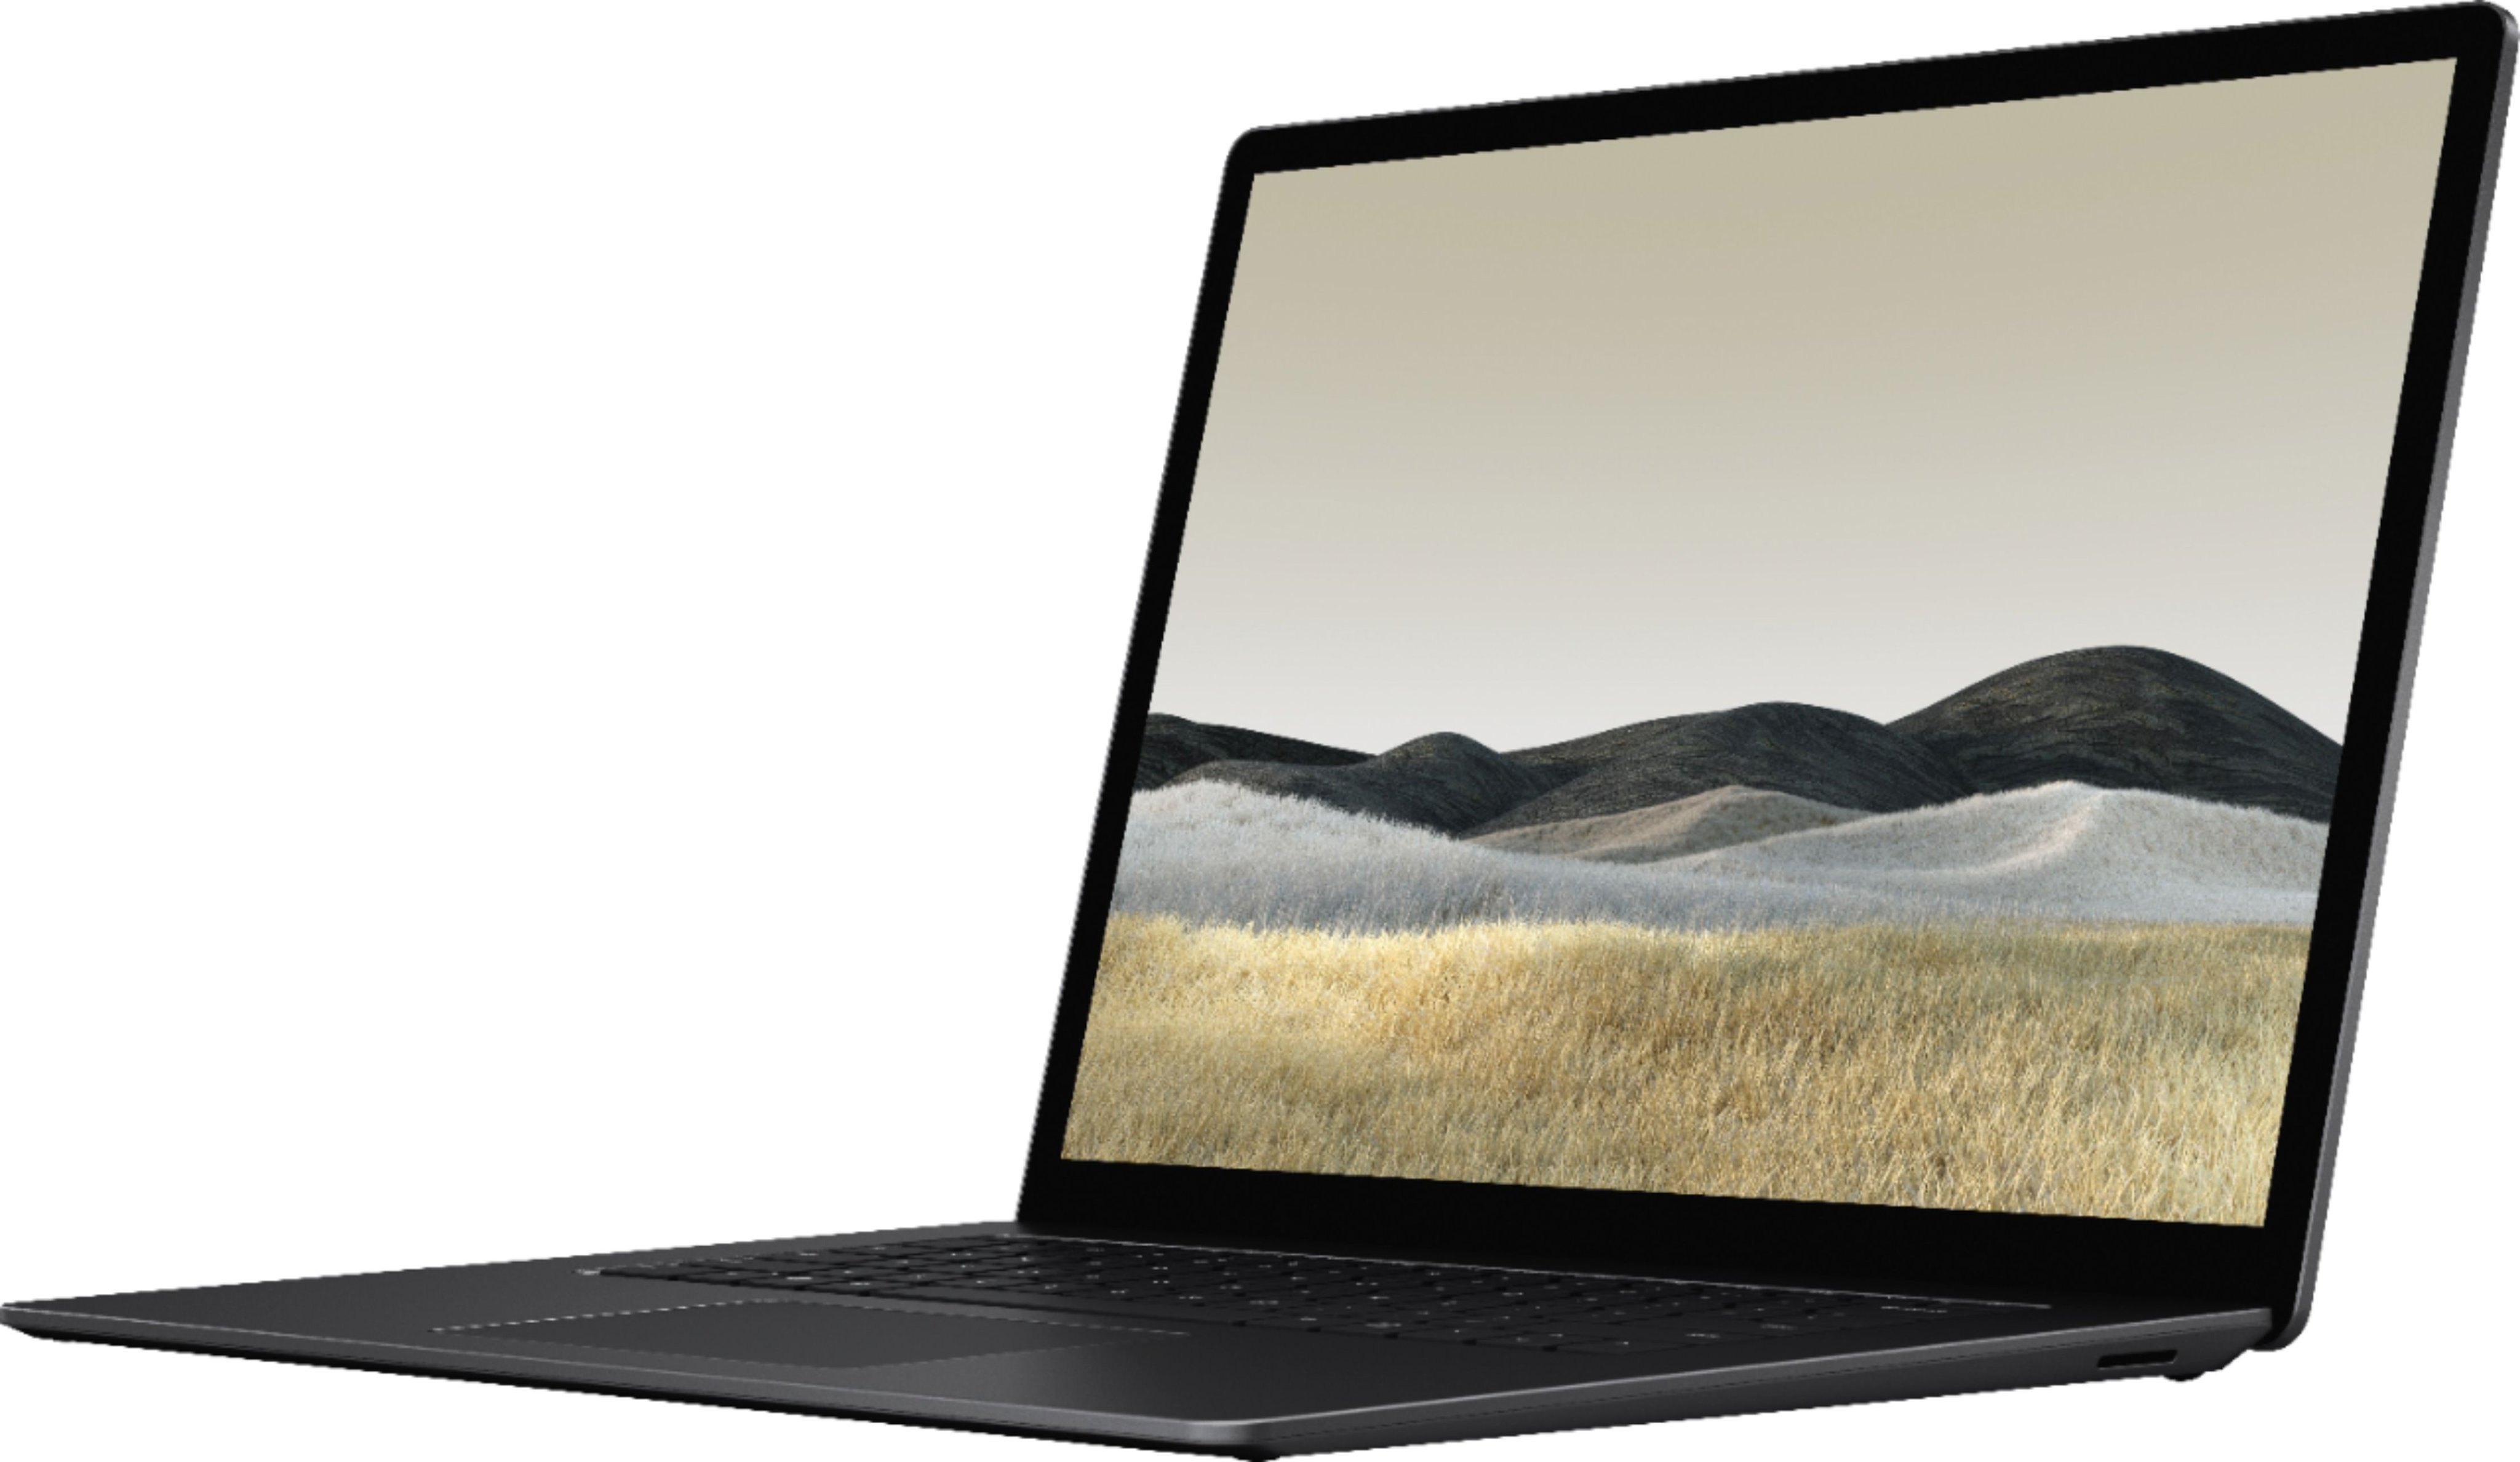 Surface Laptop 3 15-inch review roundup: Fails to meet the expectations 1